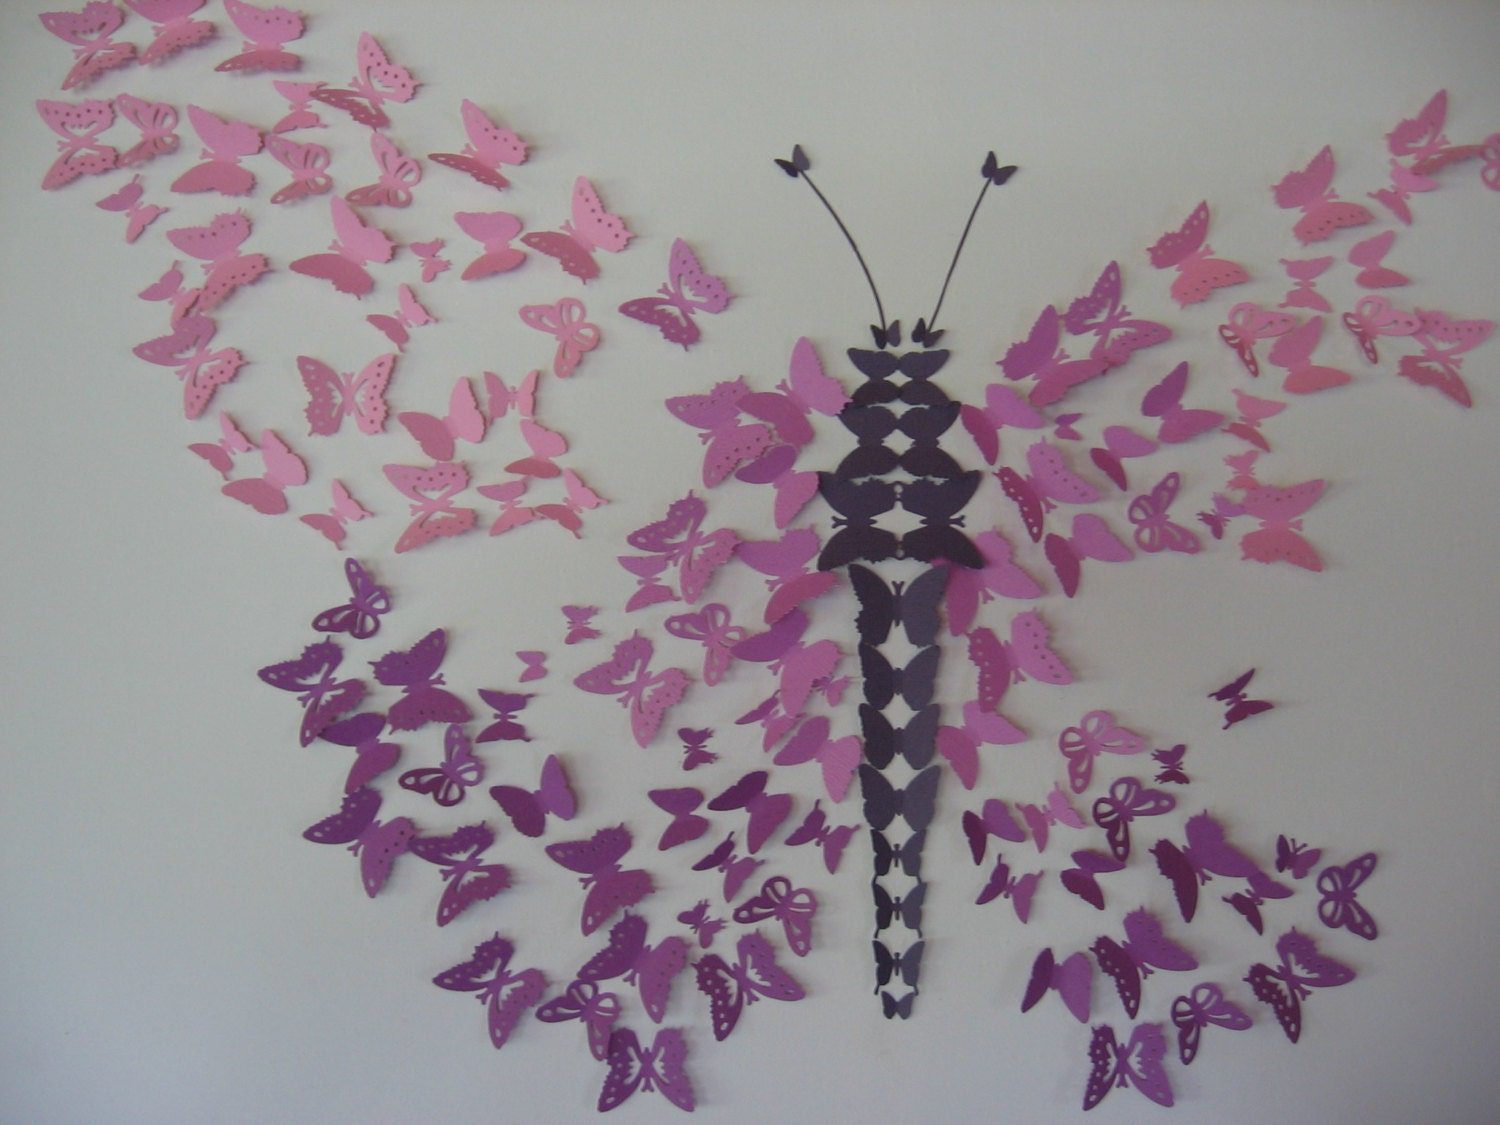 3D Butterfly Ombre Wall Art Mauve tones by artlandish on Etsy